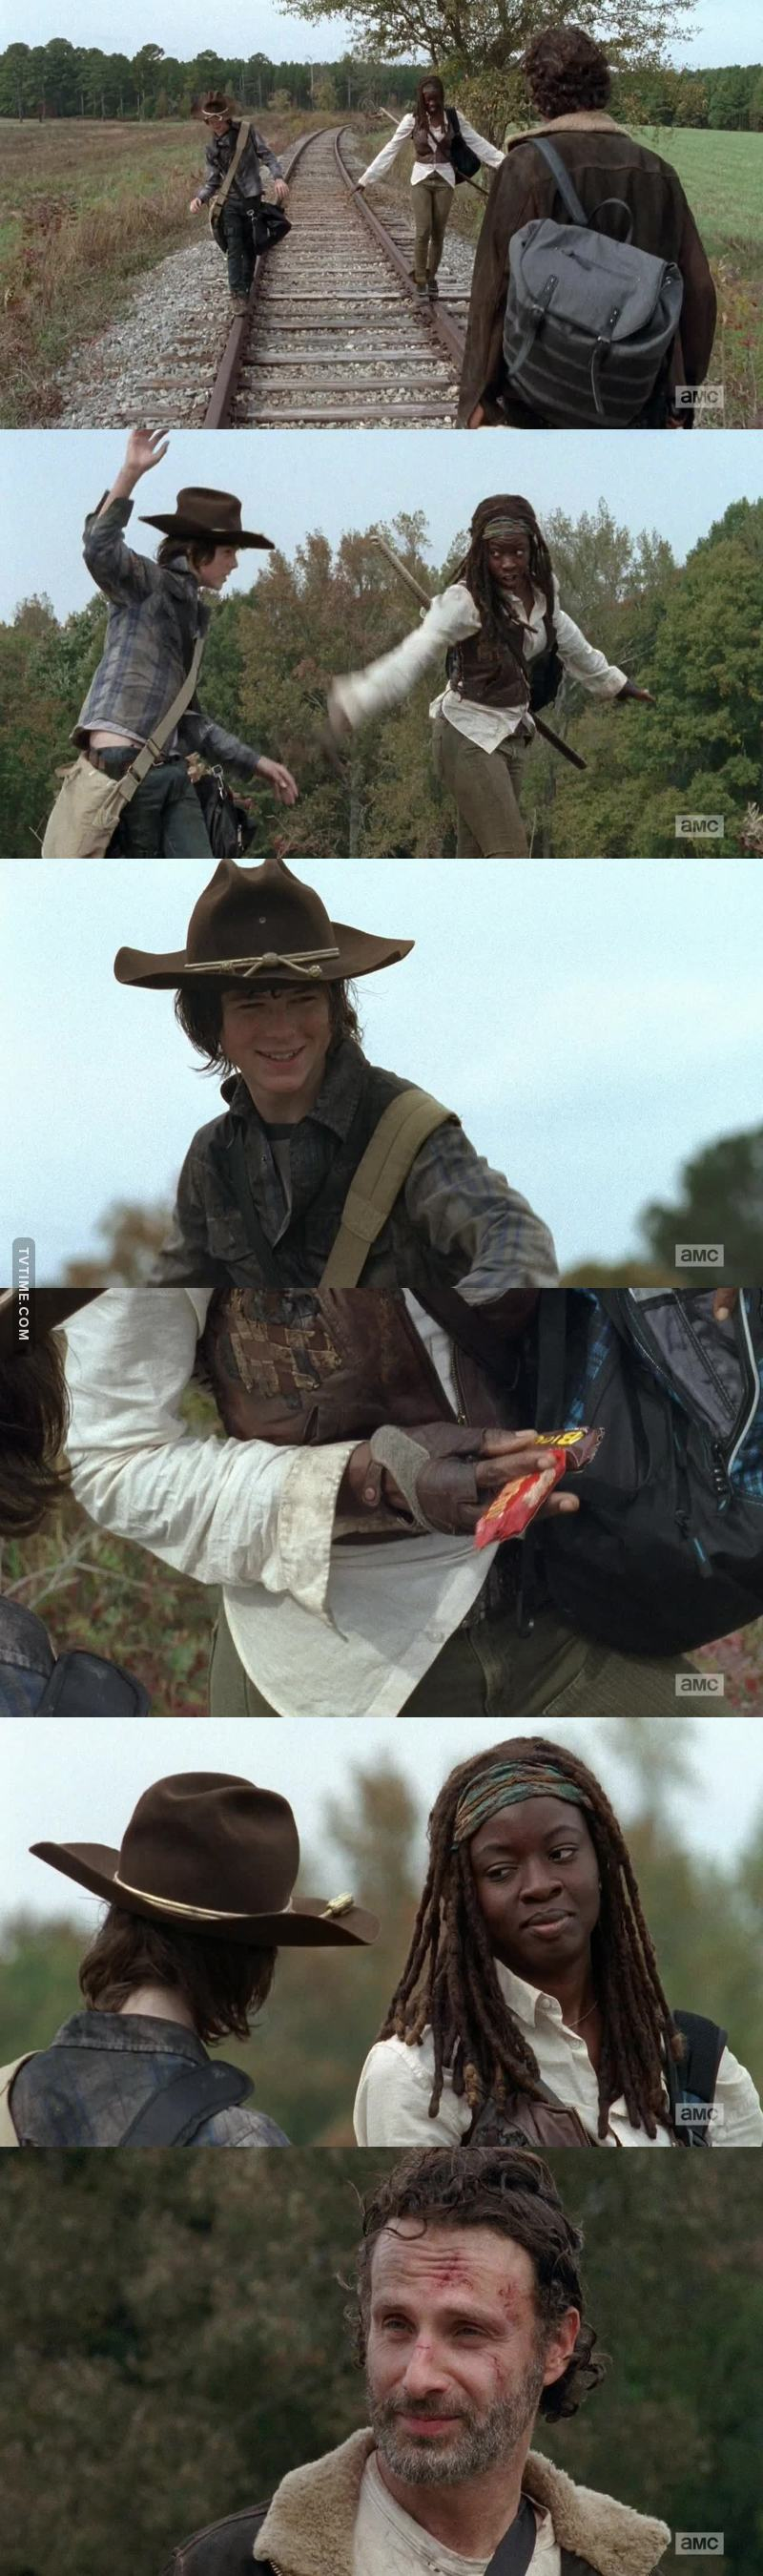 Actually love Carl and michonne's relationship 😂